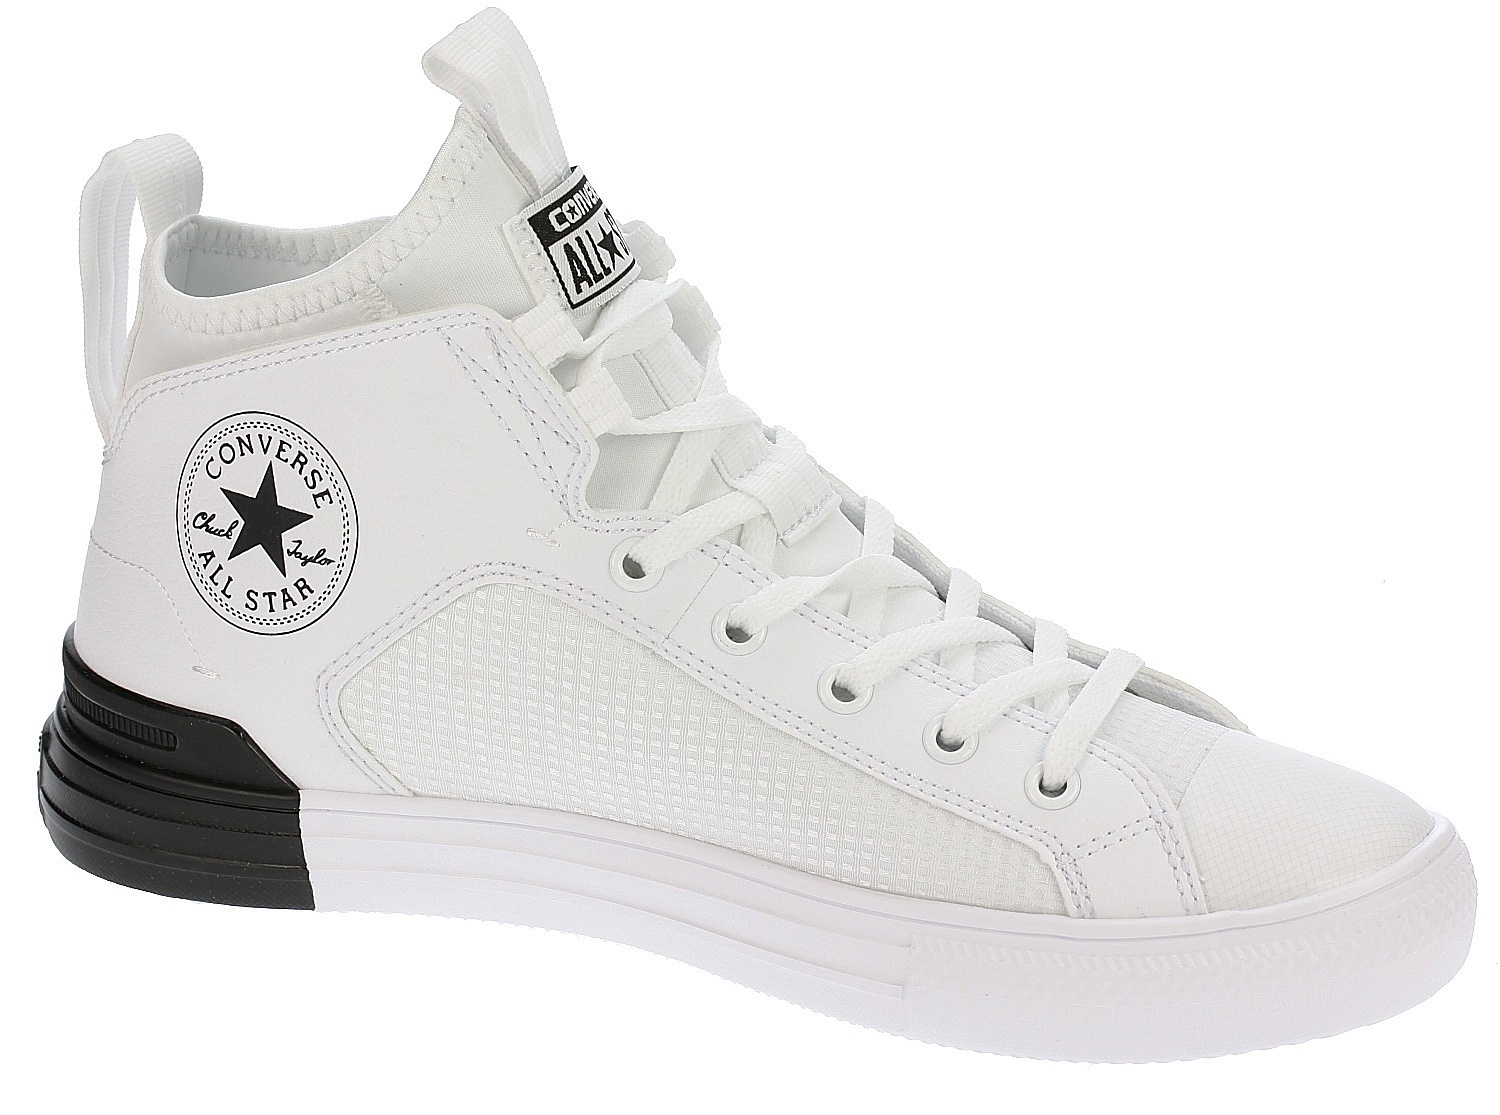 new arrival 54647 a29f6 boty Converse Chuck Taylor All Star Ultra Mid - 159628 White White Black -  Snowboard shop, skateshop - blackcomb.cz